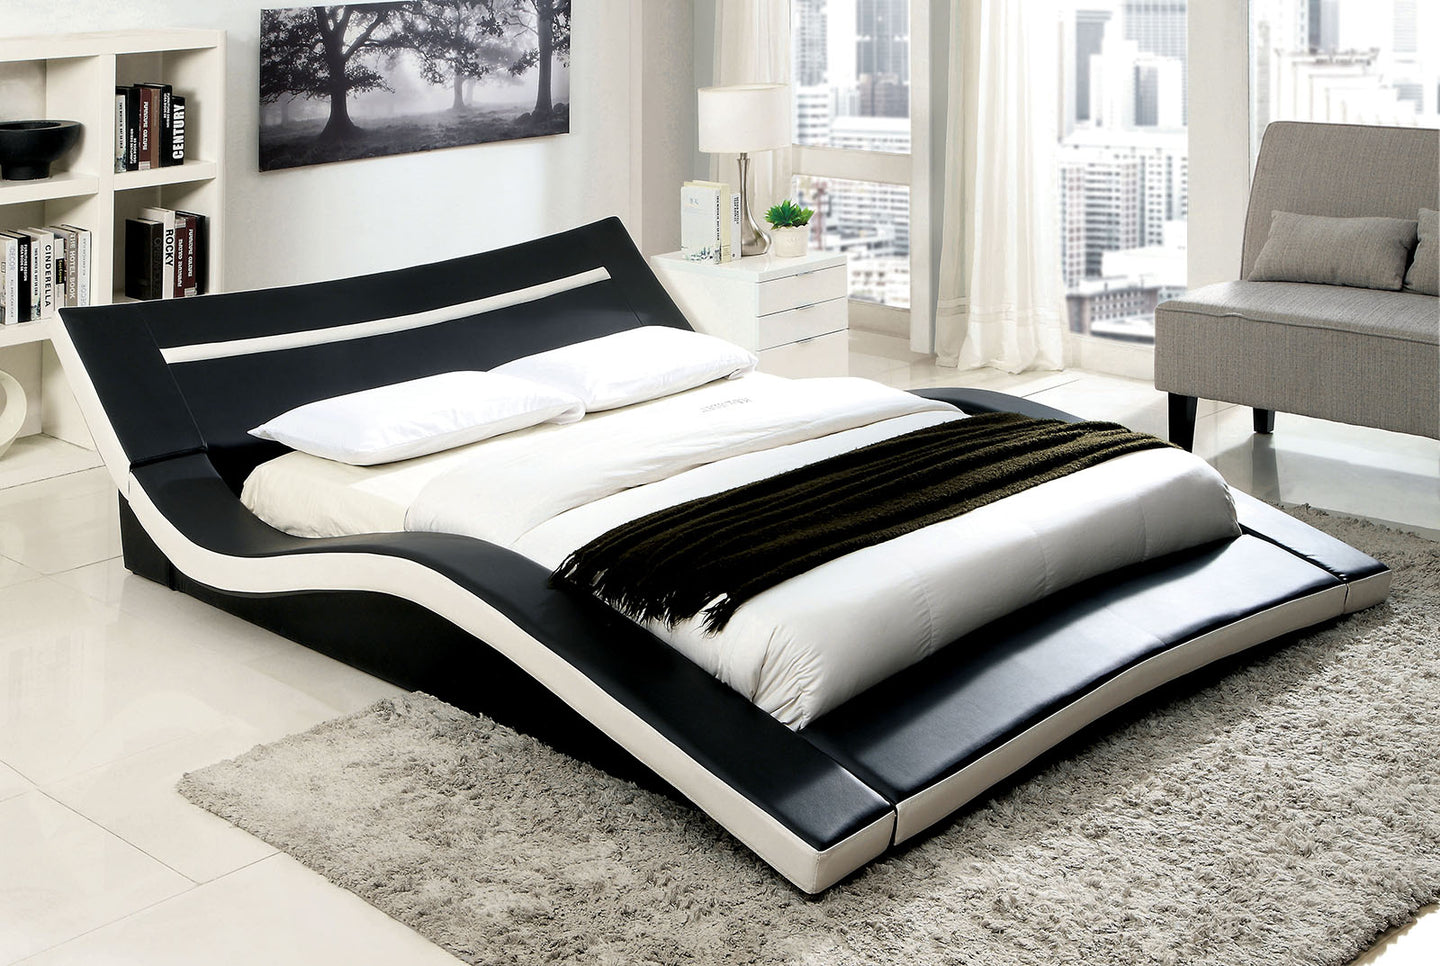 Furniture of America Zelina Contemporary Black and White Queen Platform Bed